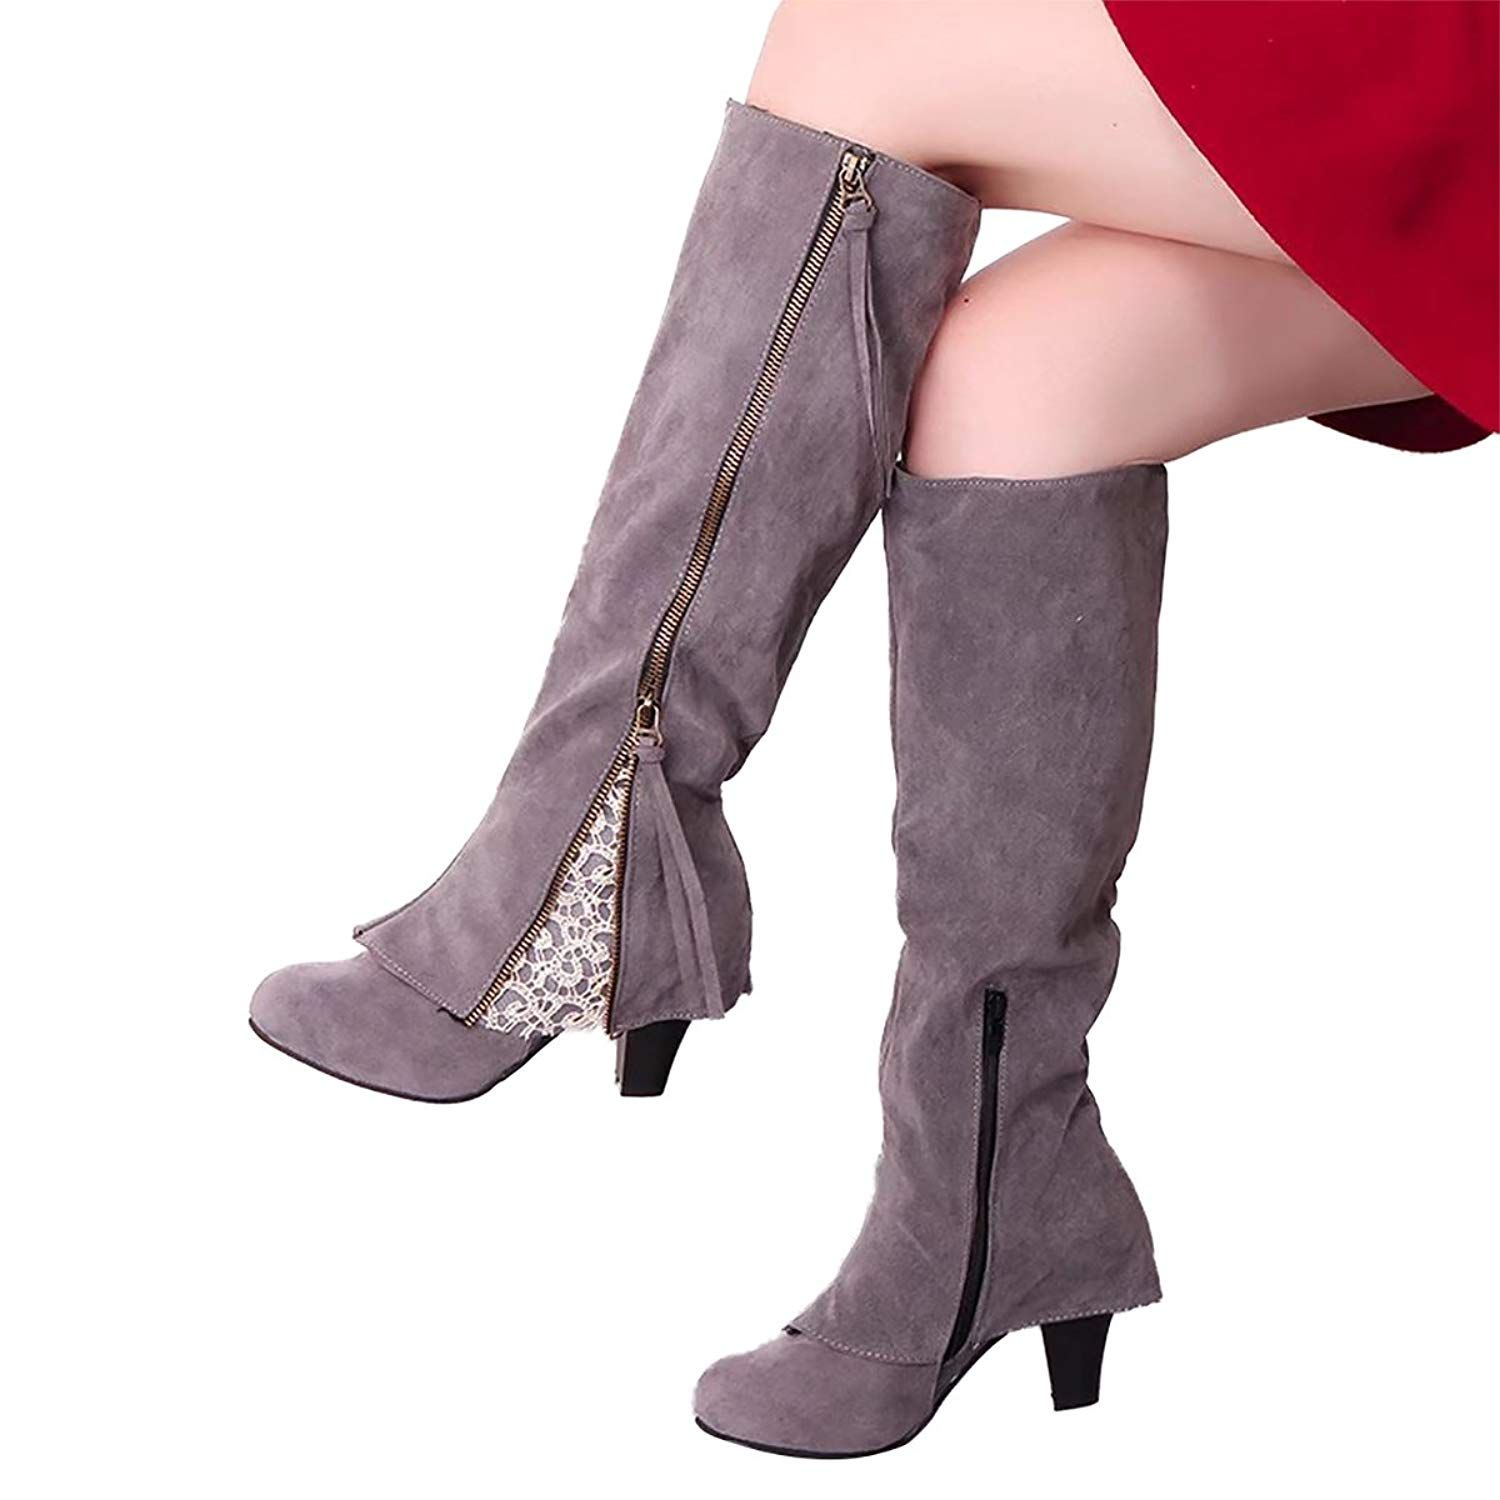 0499b2e56c0a Inornever Women s Chunky High Heel Ankle Booties Fashion Buckle ...